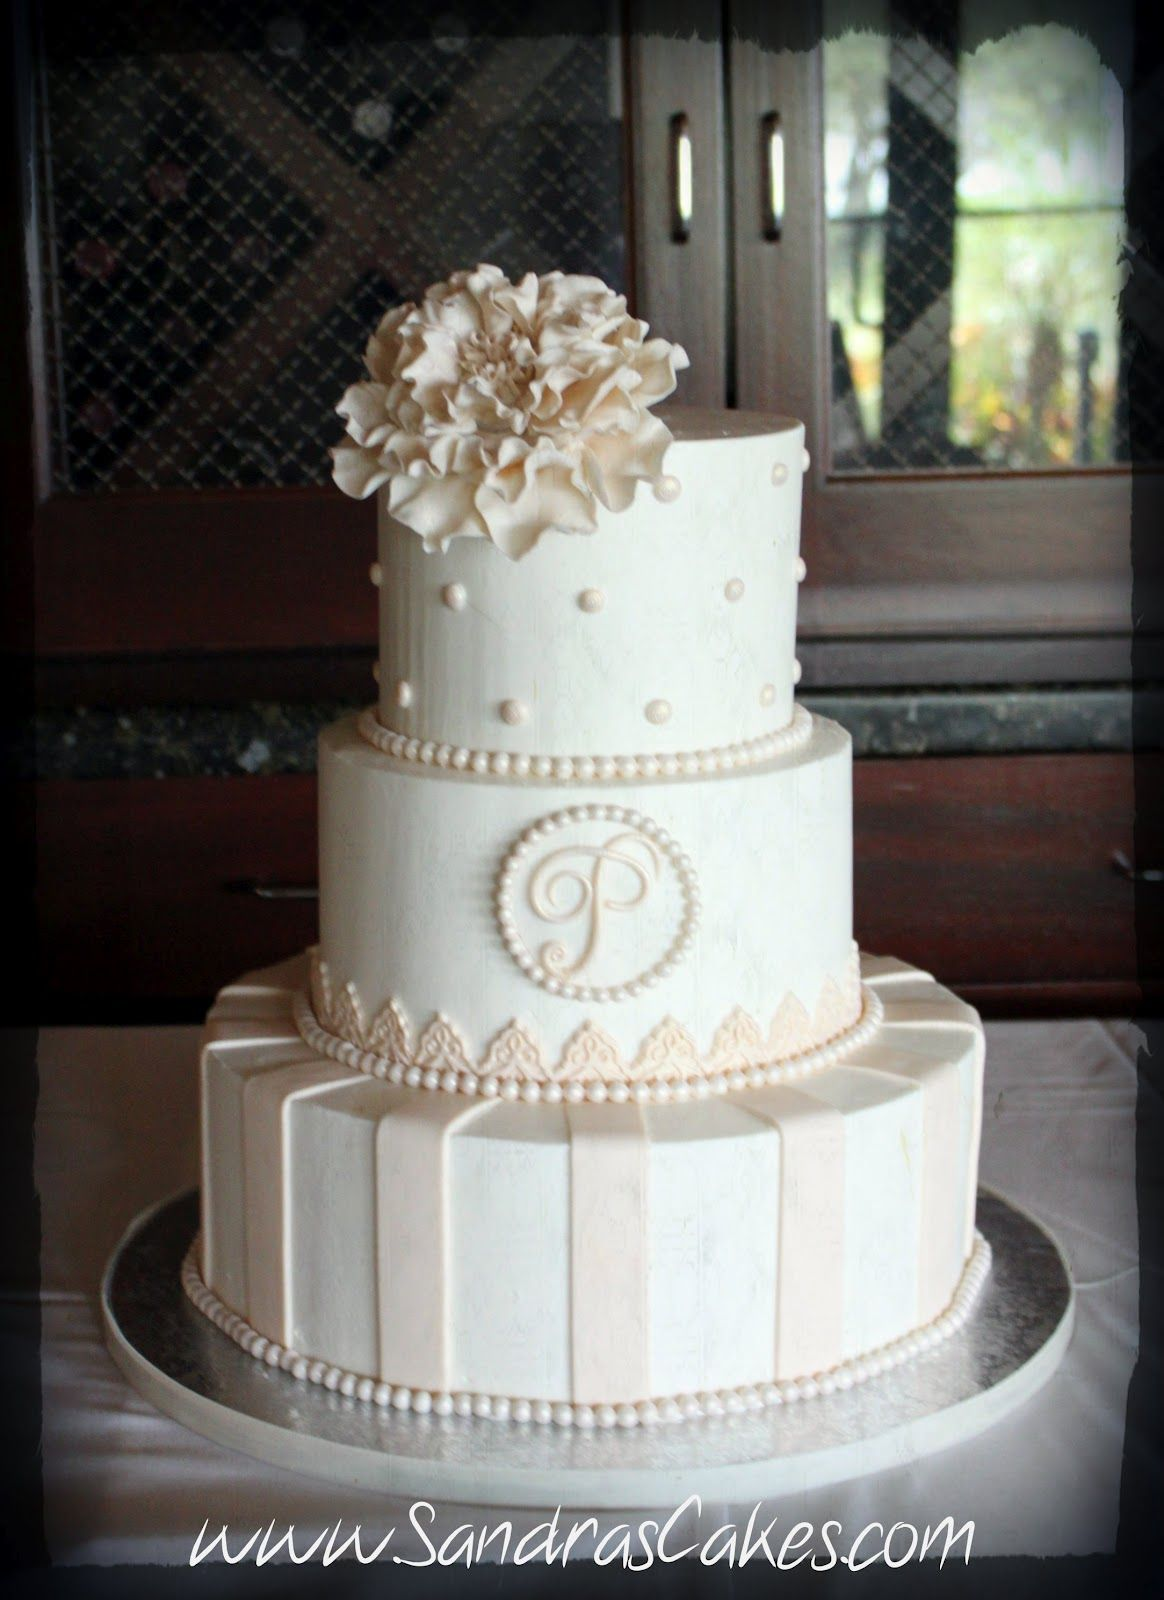 Simple But Elegant Wedding Cakes Posted By Sandra S Cakes At 7 35